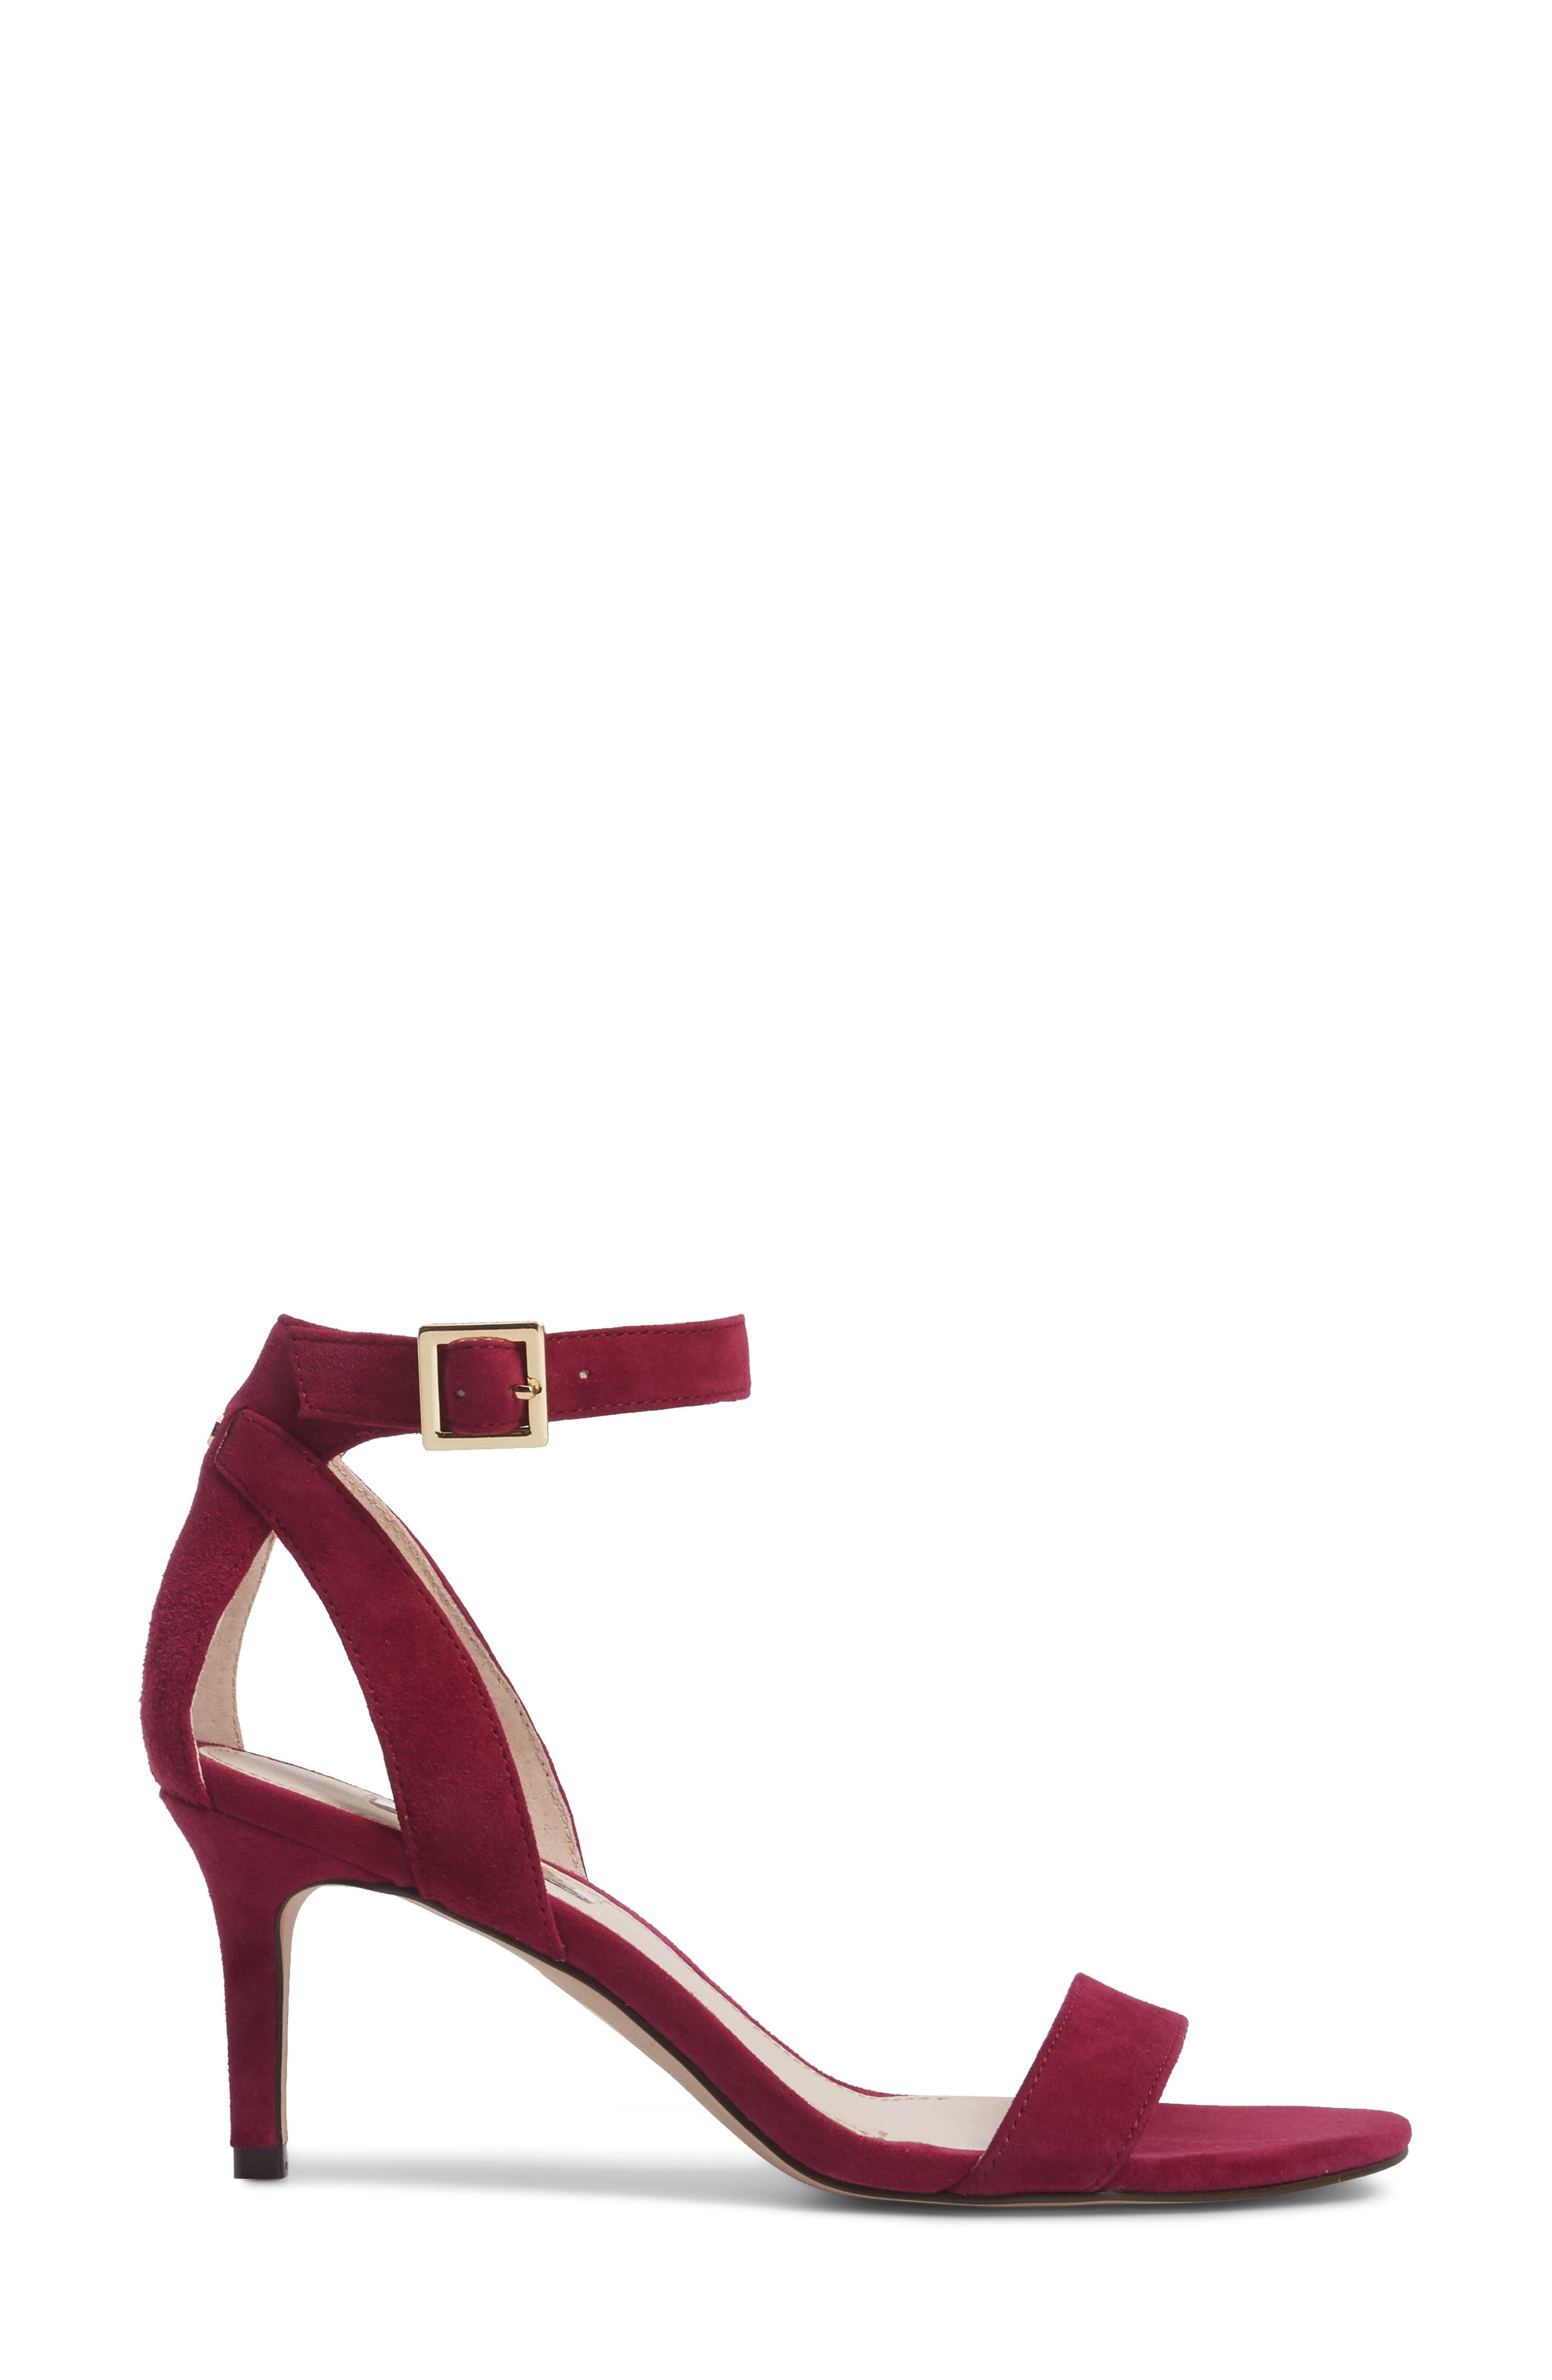 Alternate Image 3  - Louise et Cie 'Hyacinth' Ankle Strap Sandal (Women)